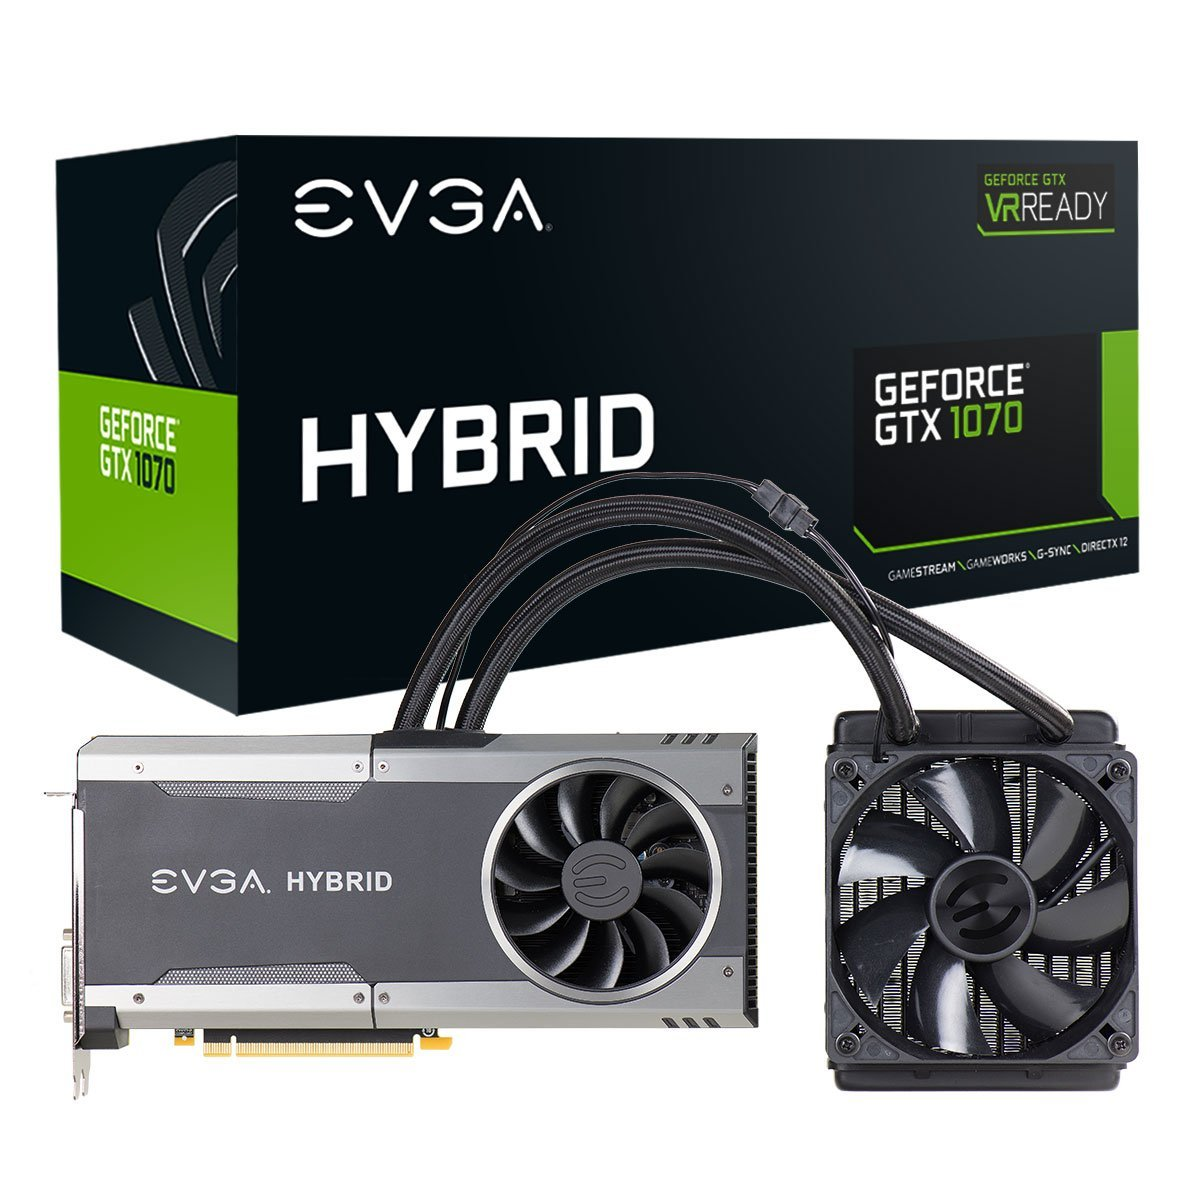 EVGA GeForce GTX 1070 FTW HYBRID GAMING, 8GB GDDR5, RGB LED, All-In-One 08G-P4-6278-KR